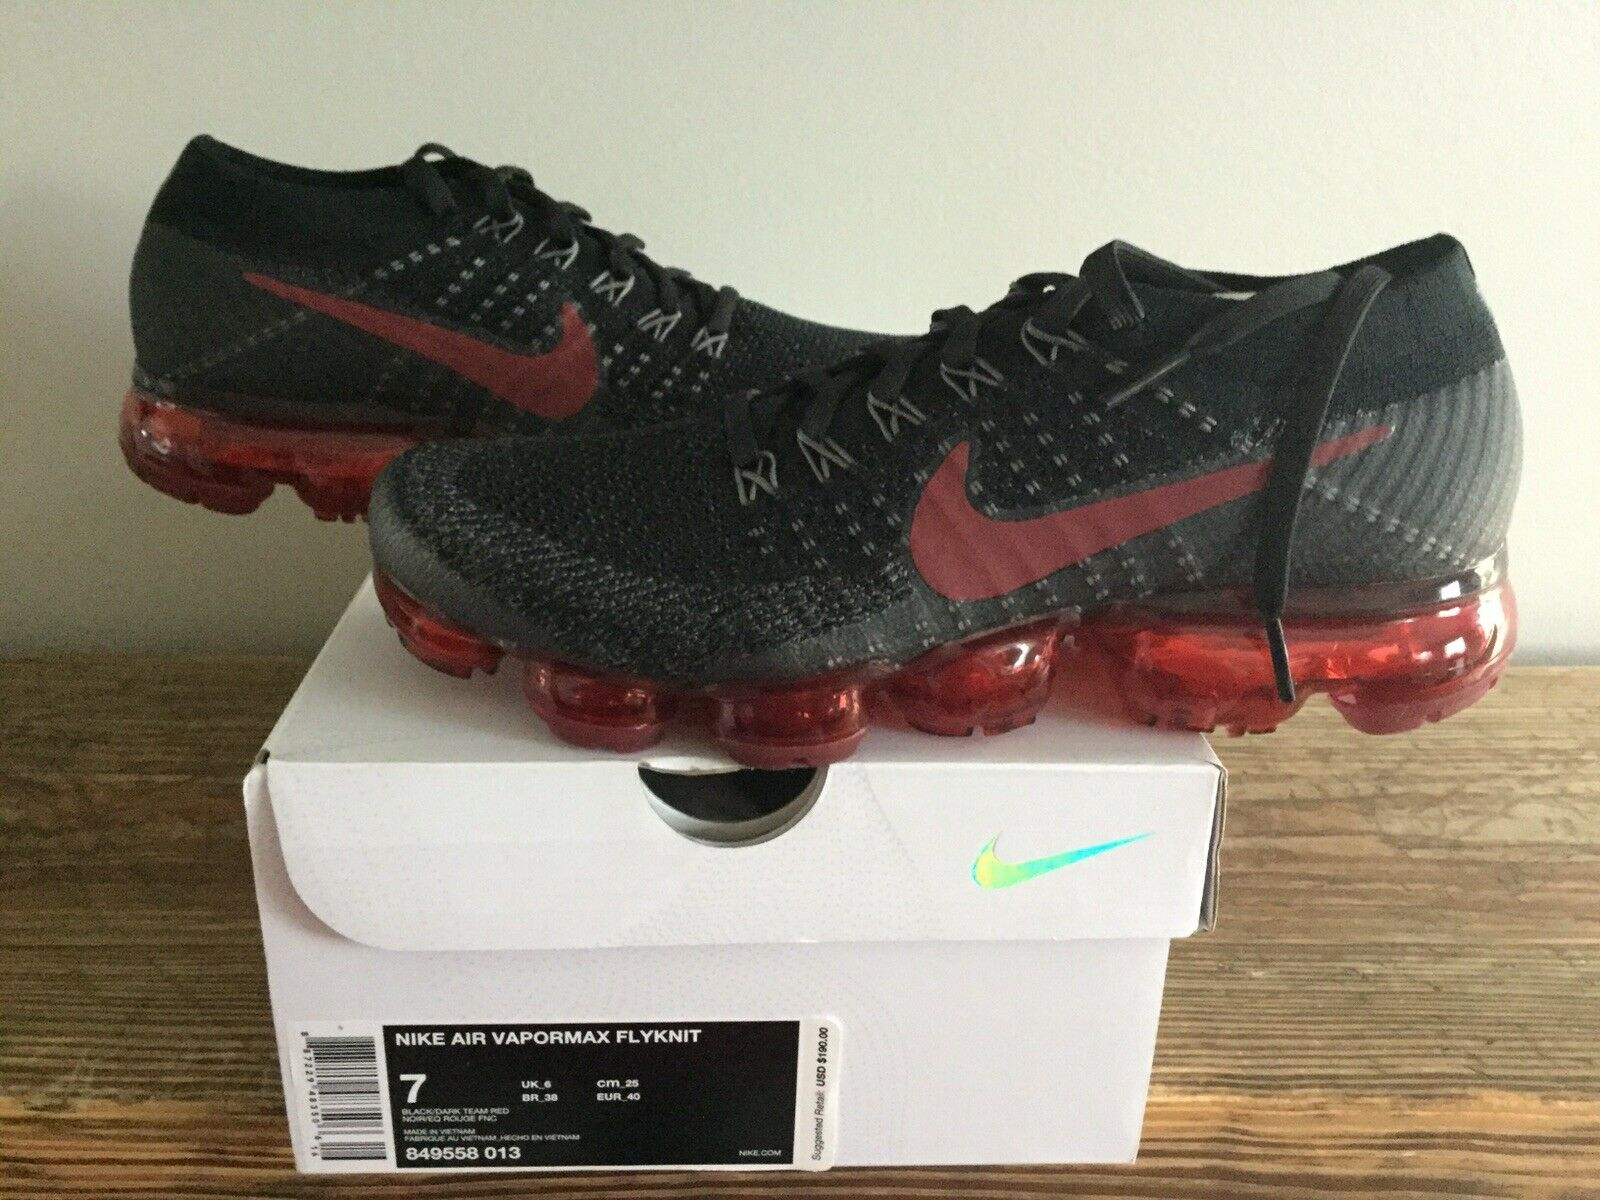 nouveau IN BOX  HOMME TAILLE 7 NIKE AIR VAPORMAX FLYKNIT Chaussures  Brouge  849558-013 Noir Rouge